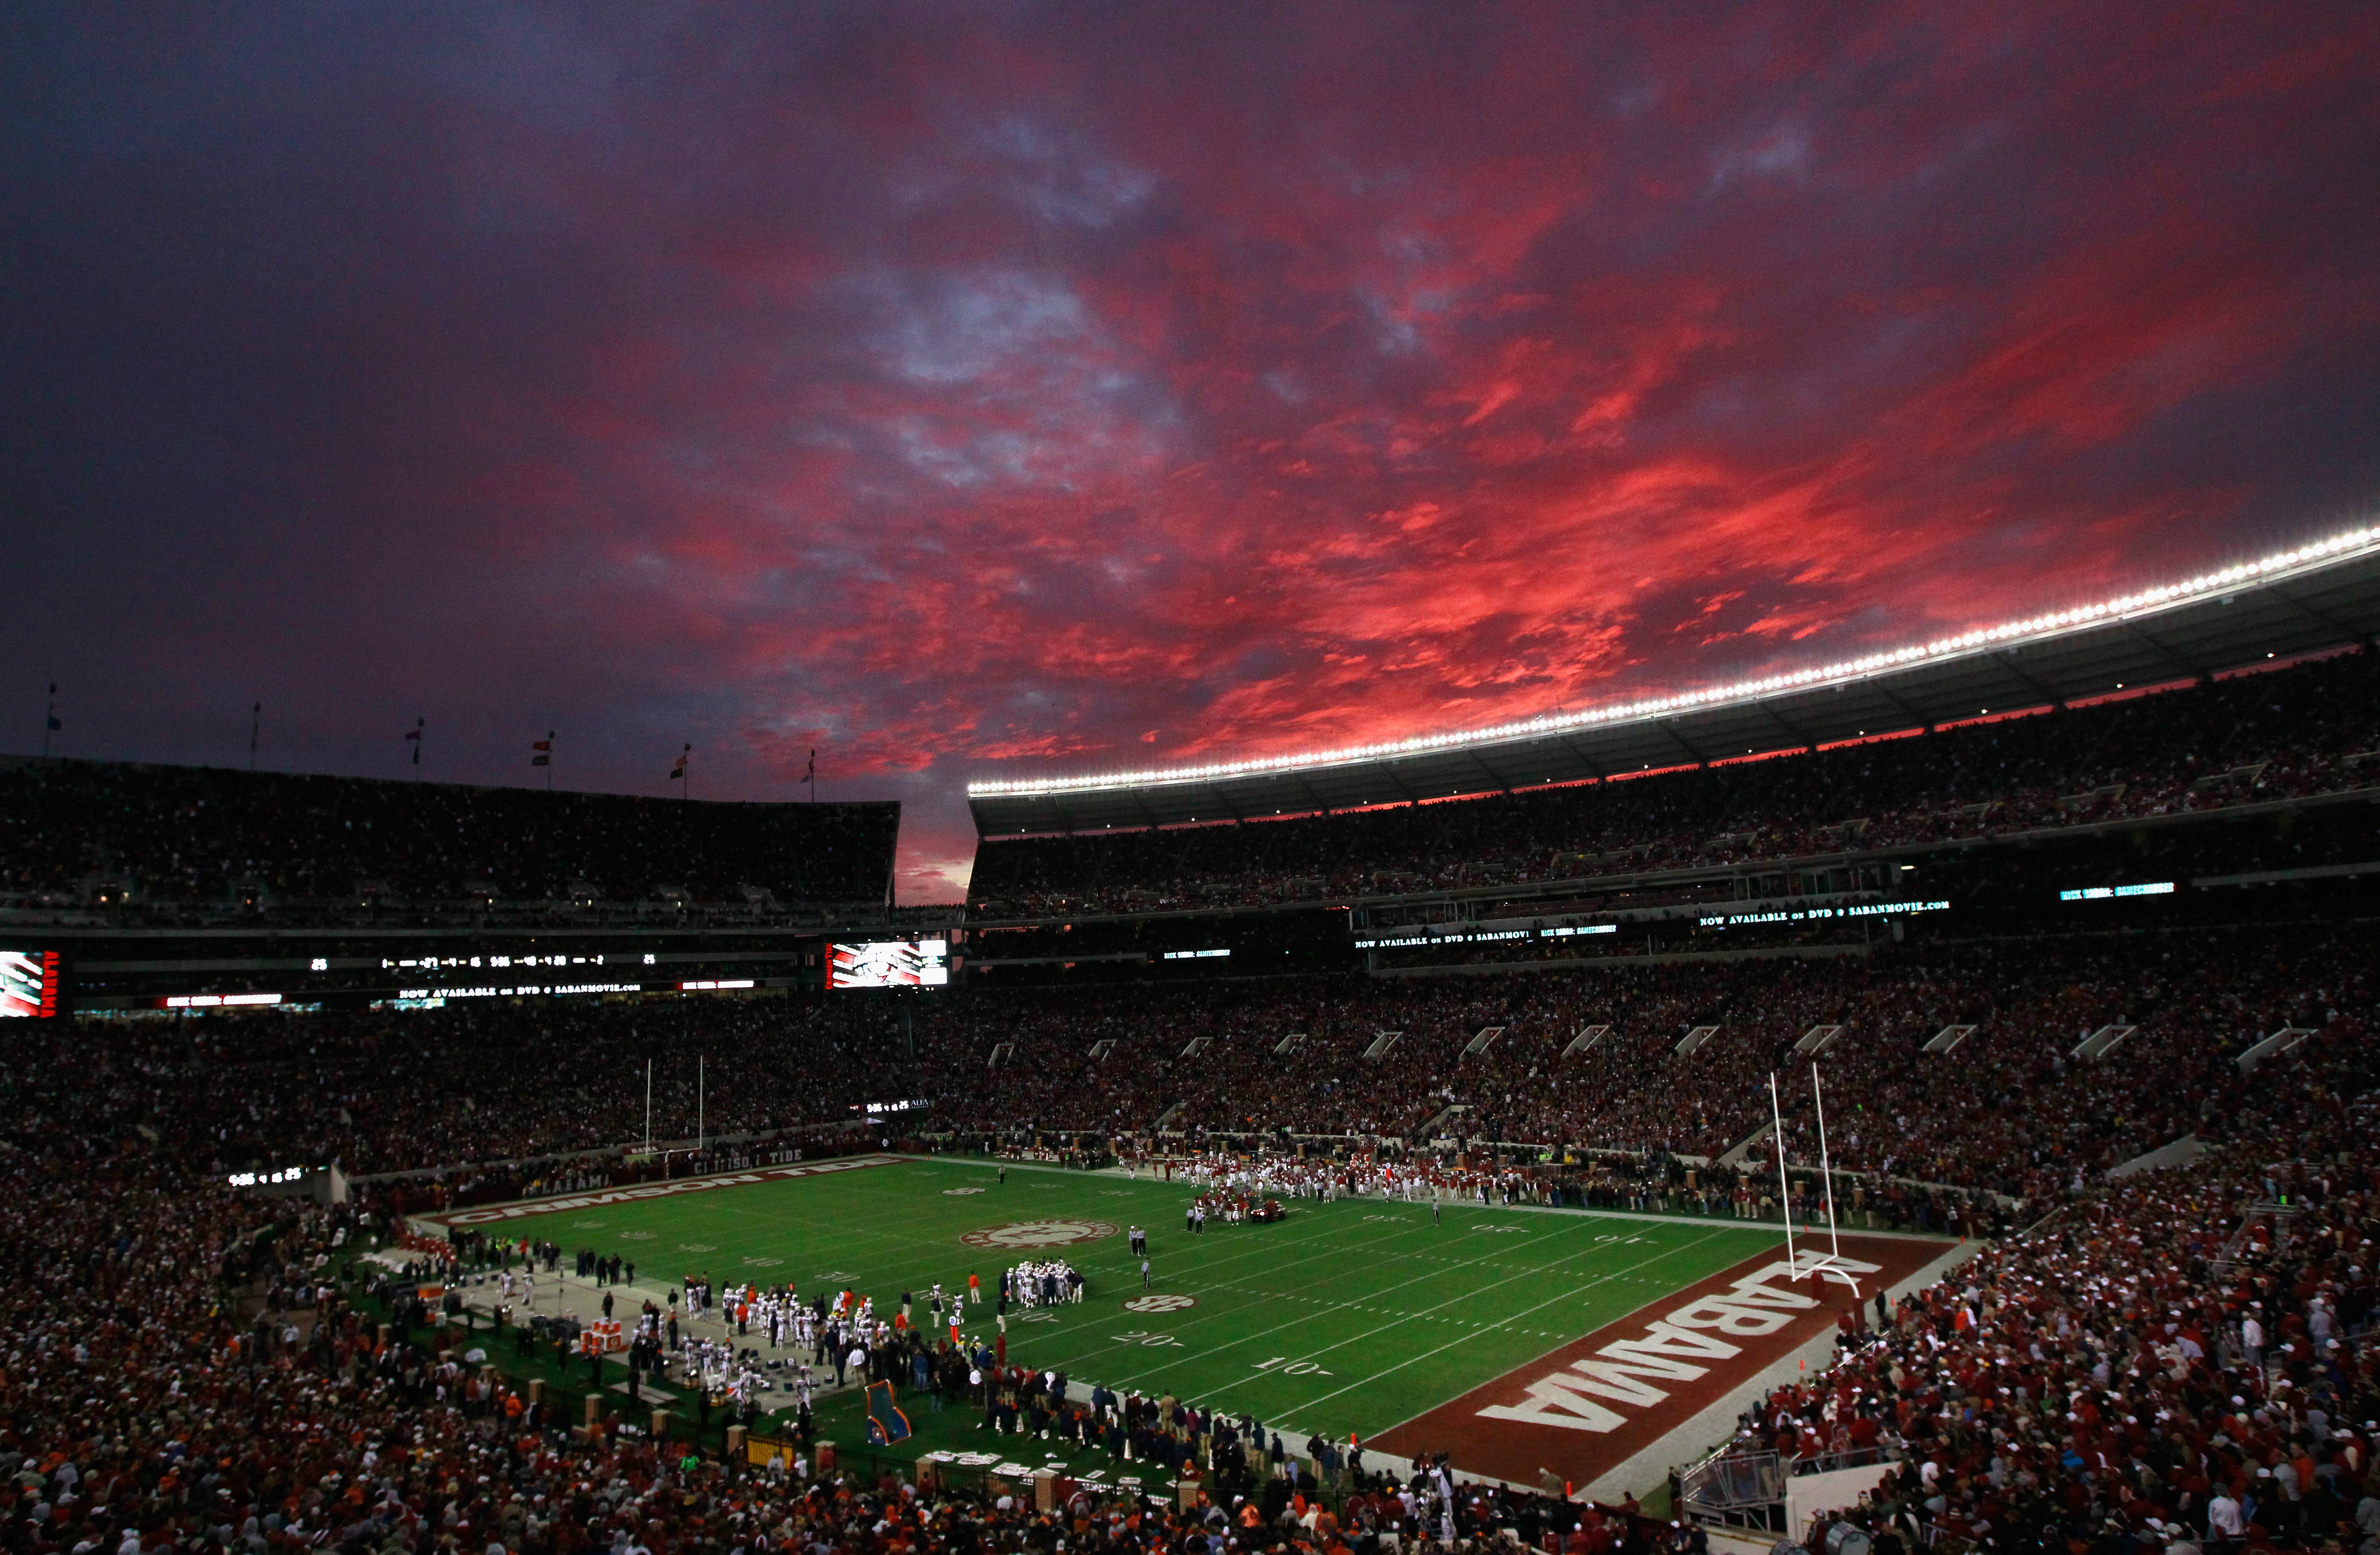 Sometimes, even God borrows Alabama crimson.